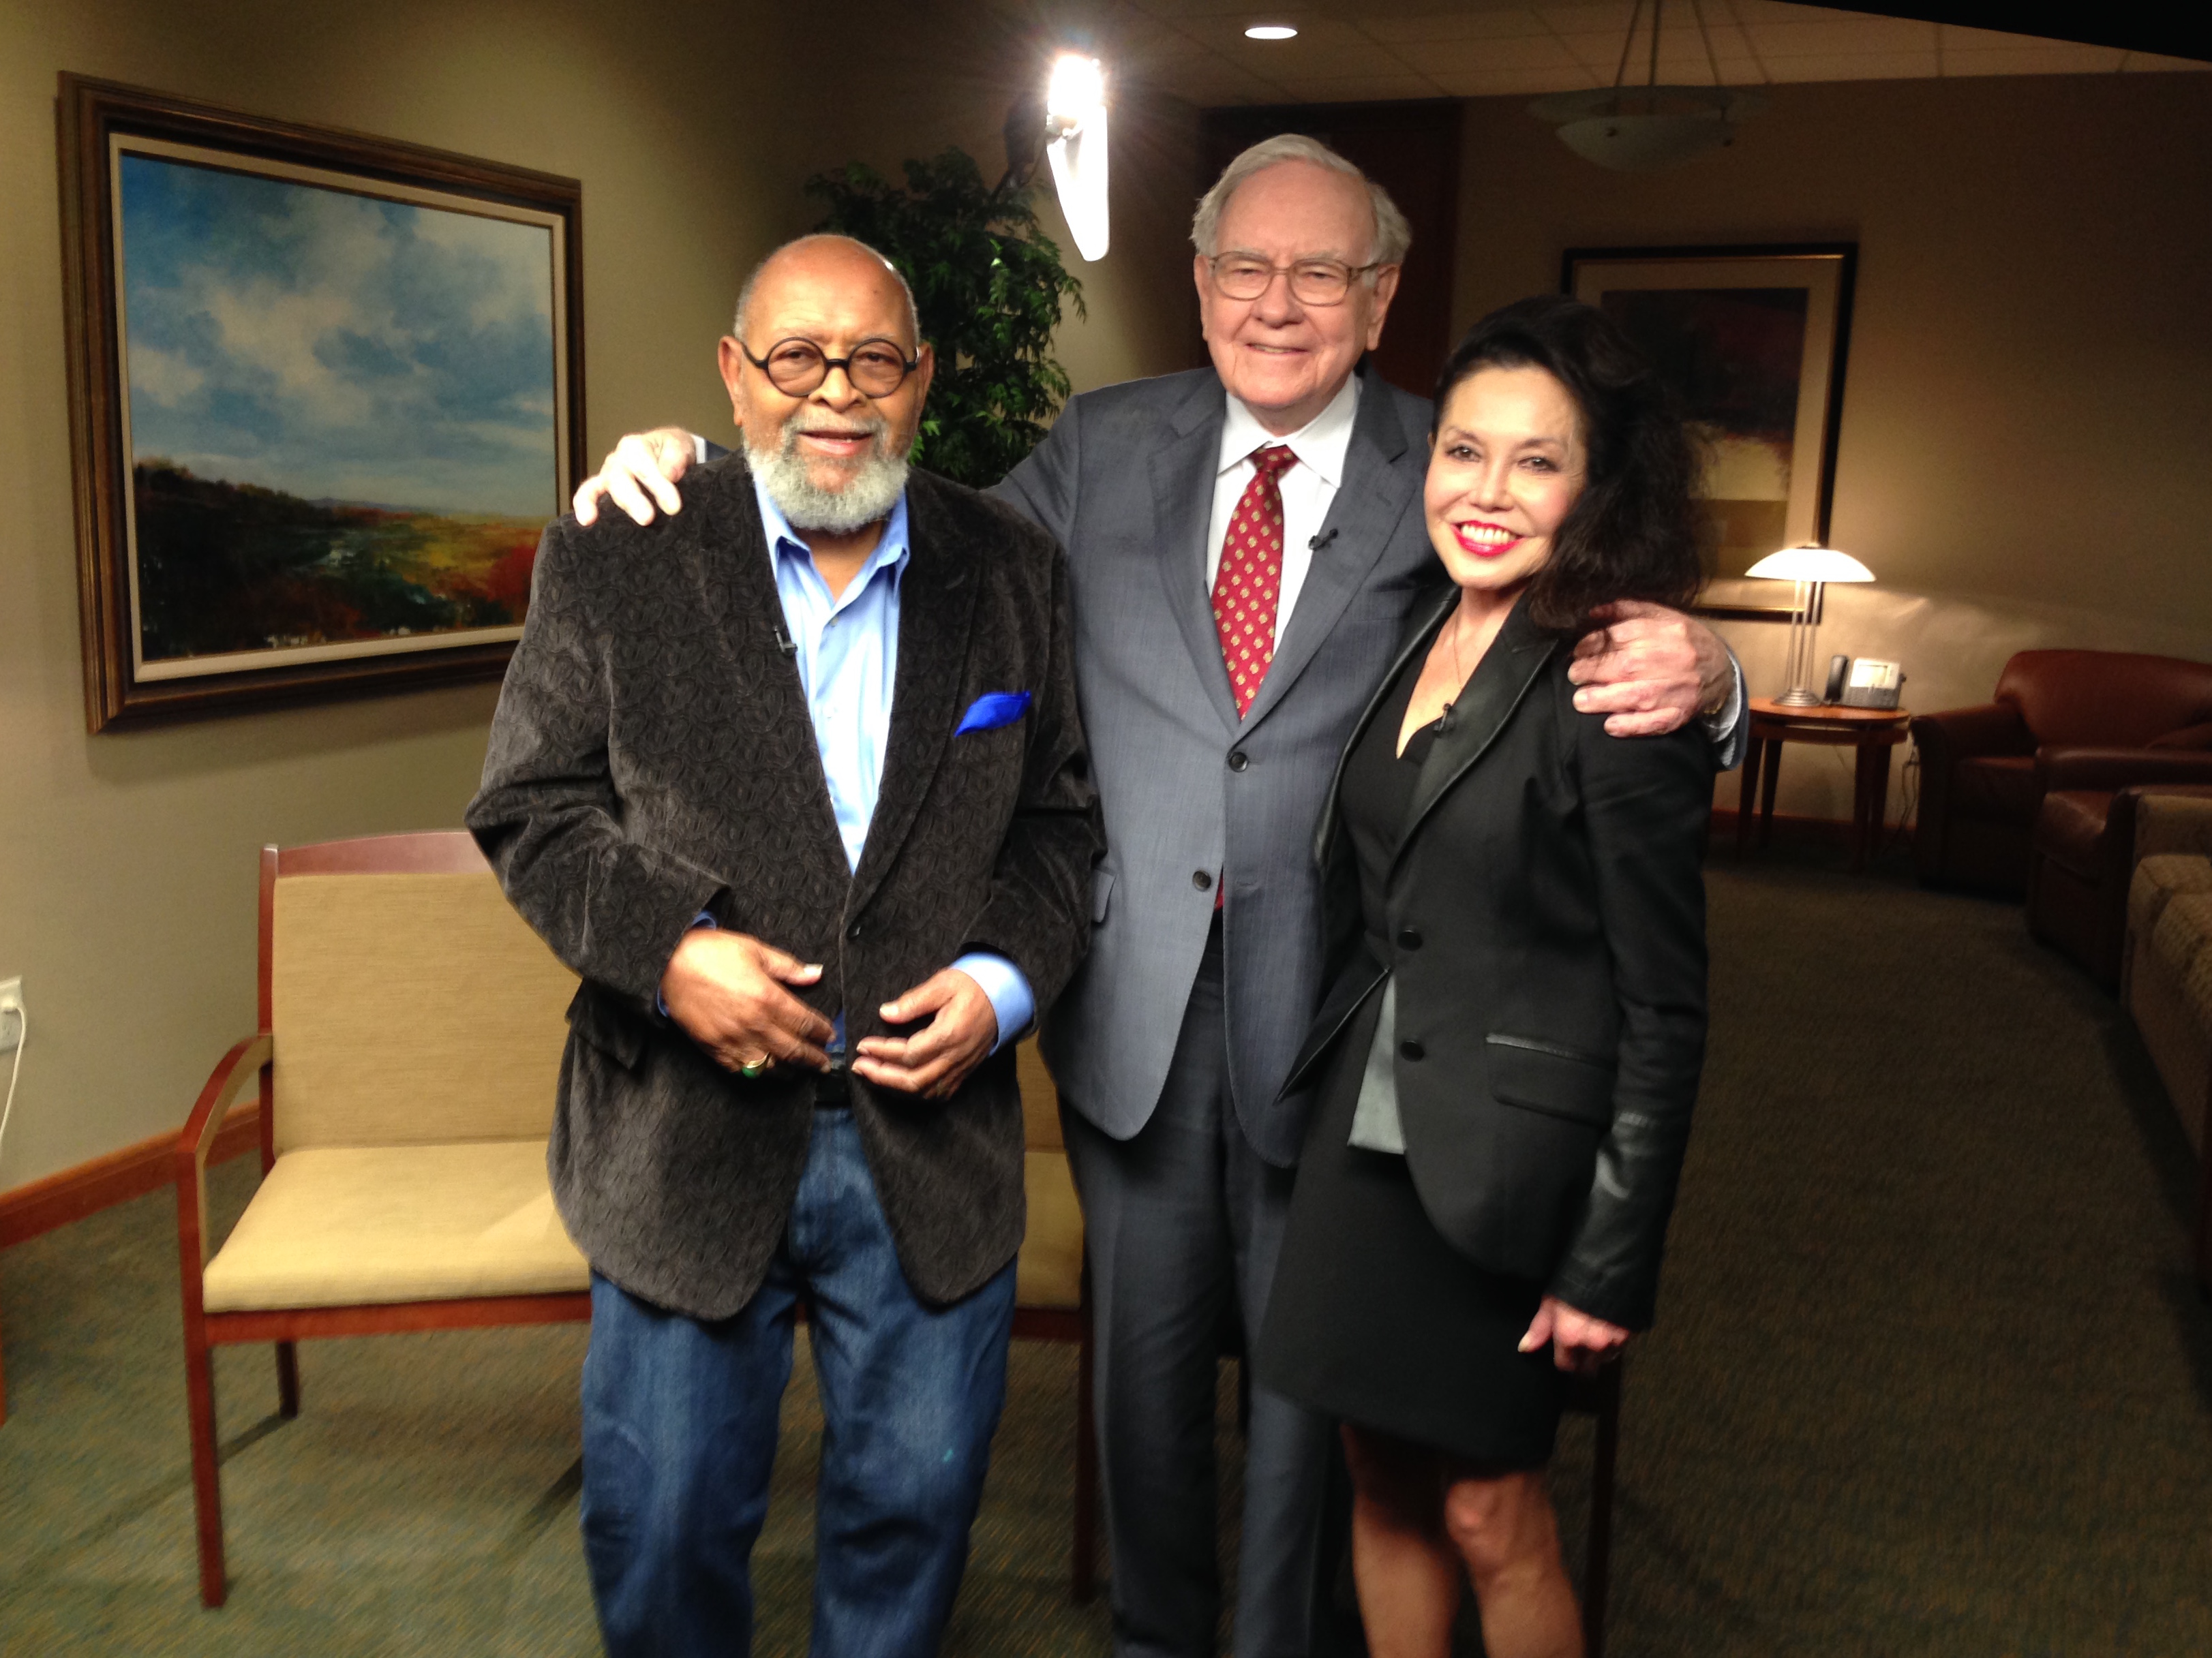 Glide co-founders Reverend Cecil Williams (left) and Janice Mirikitani (right), with Warren Buffett (center).